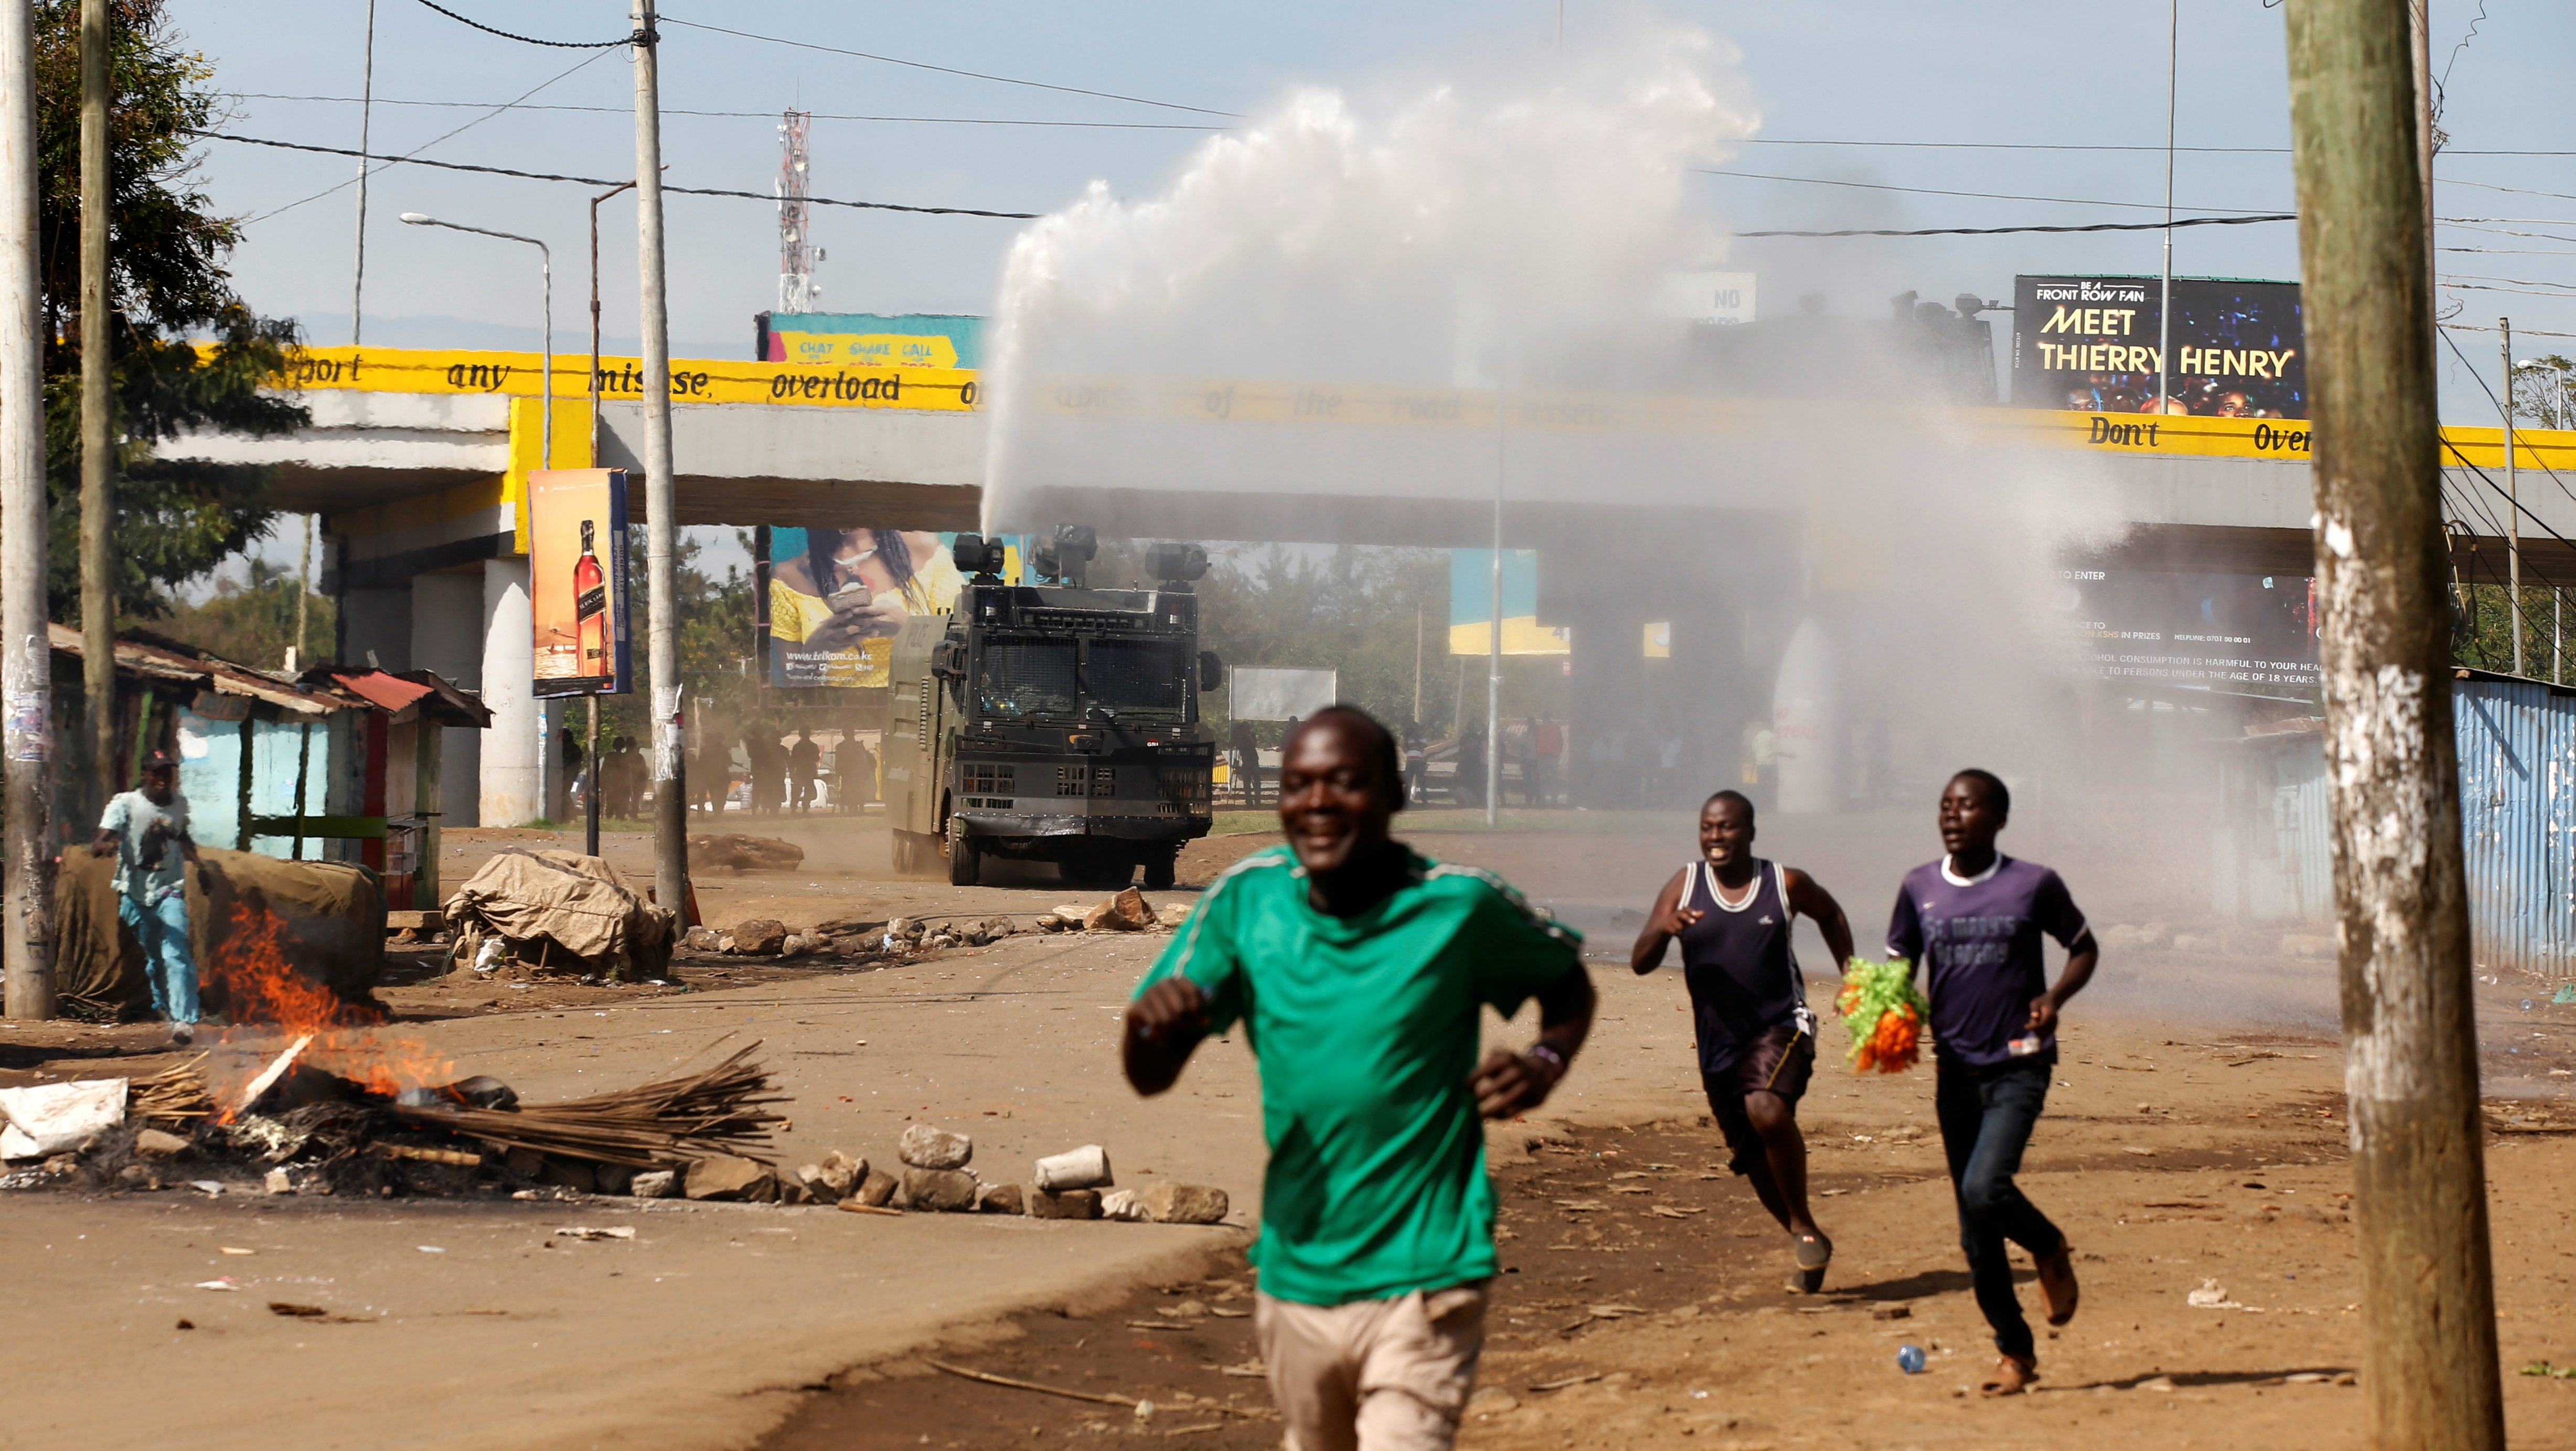 Kenyan anti-riot police deploy a water cannon during clashes with supporters of Kenyan opposition leader Raila Odinga, in Kisumu, Kenya, October 26, 2017.